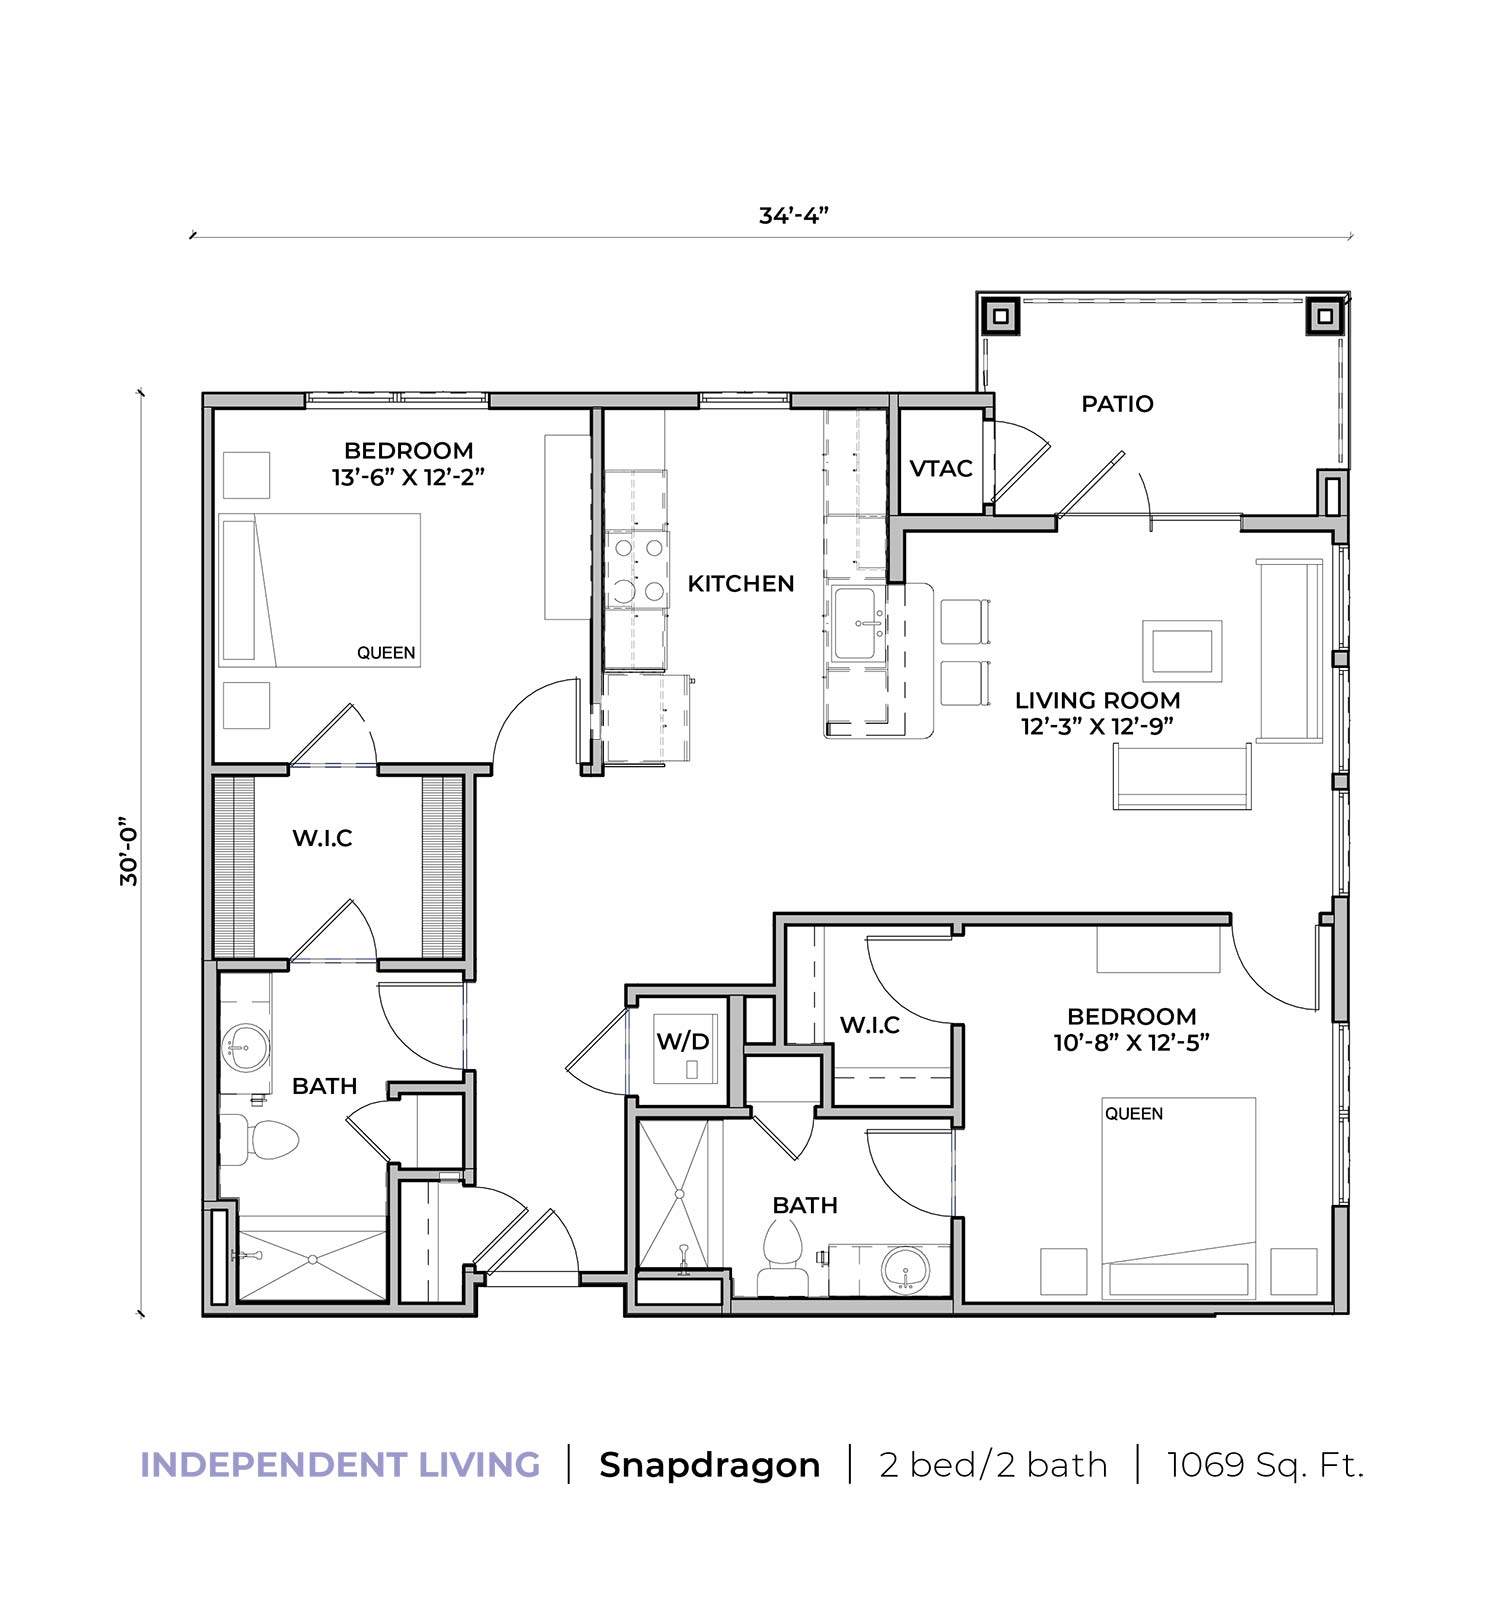 Independent living Snapdragon two-bedroom two-bathroom apartment floor plan